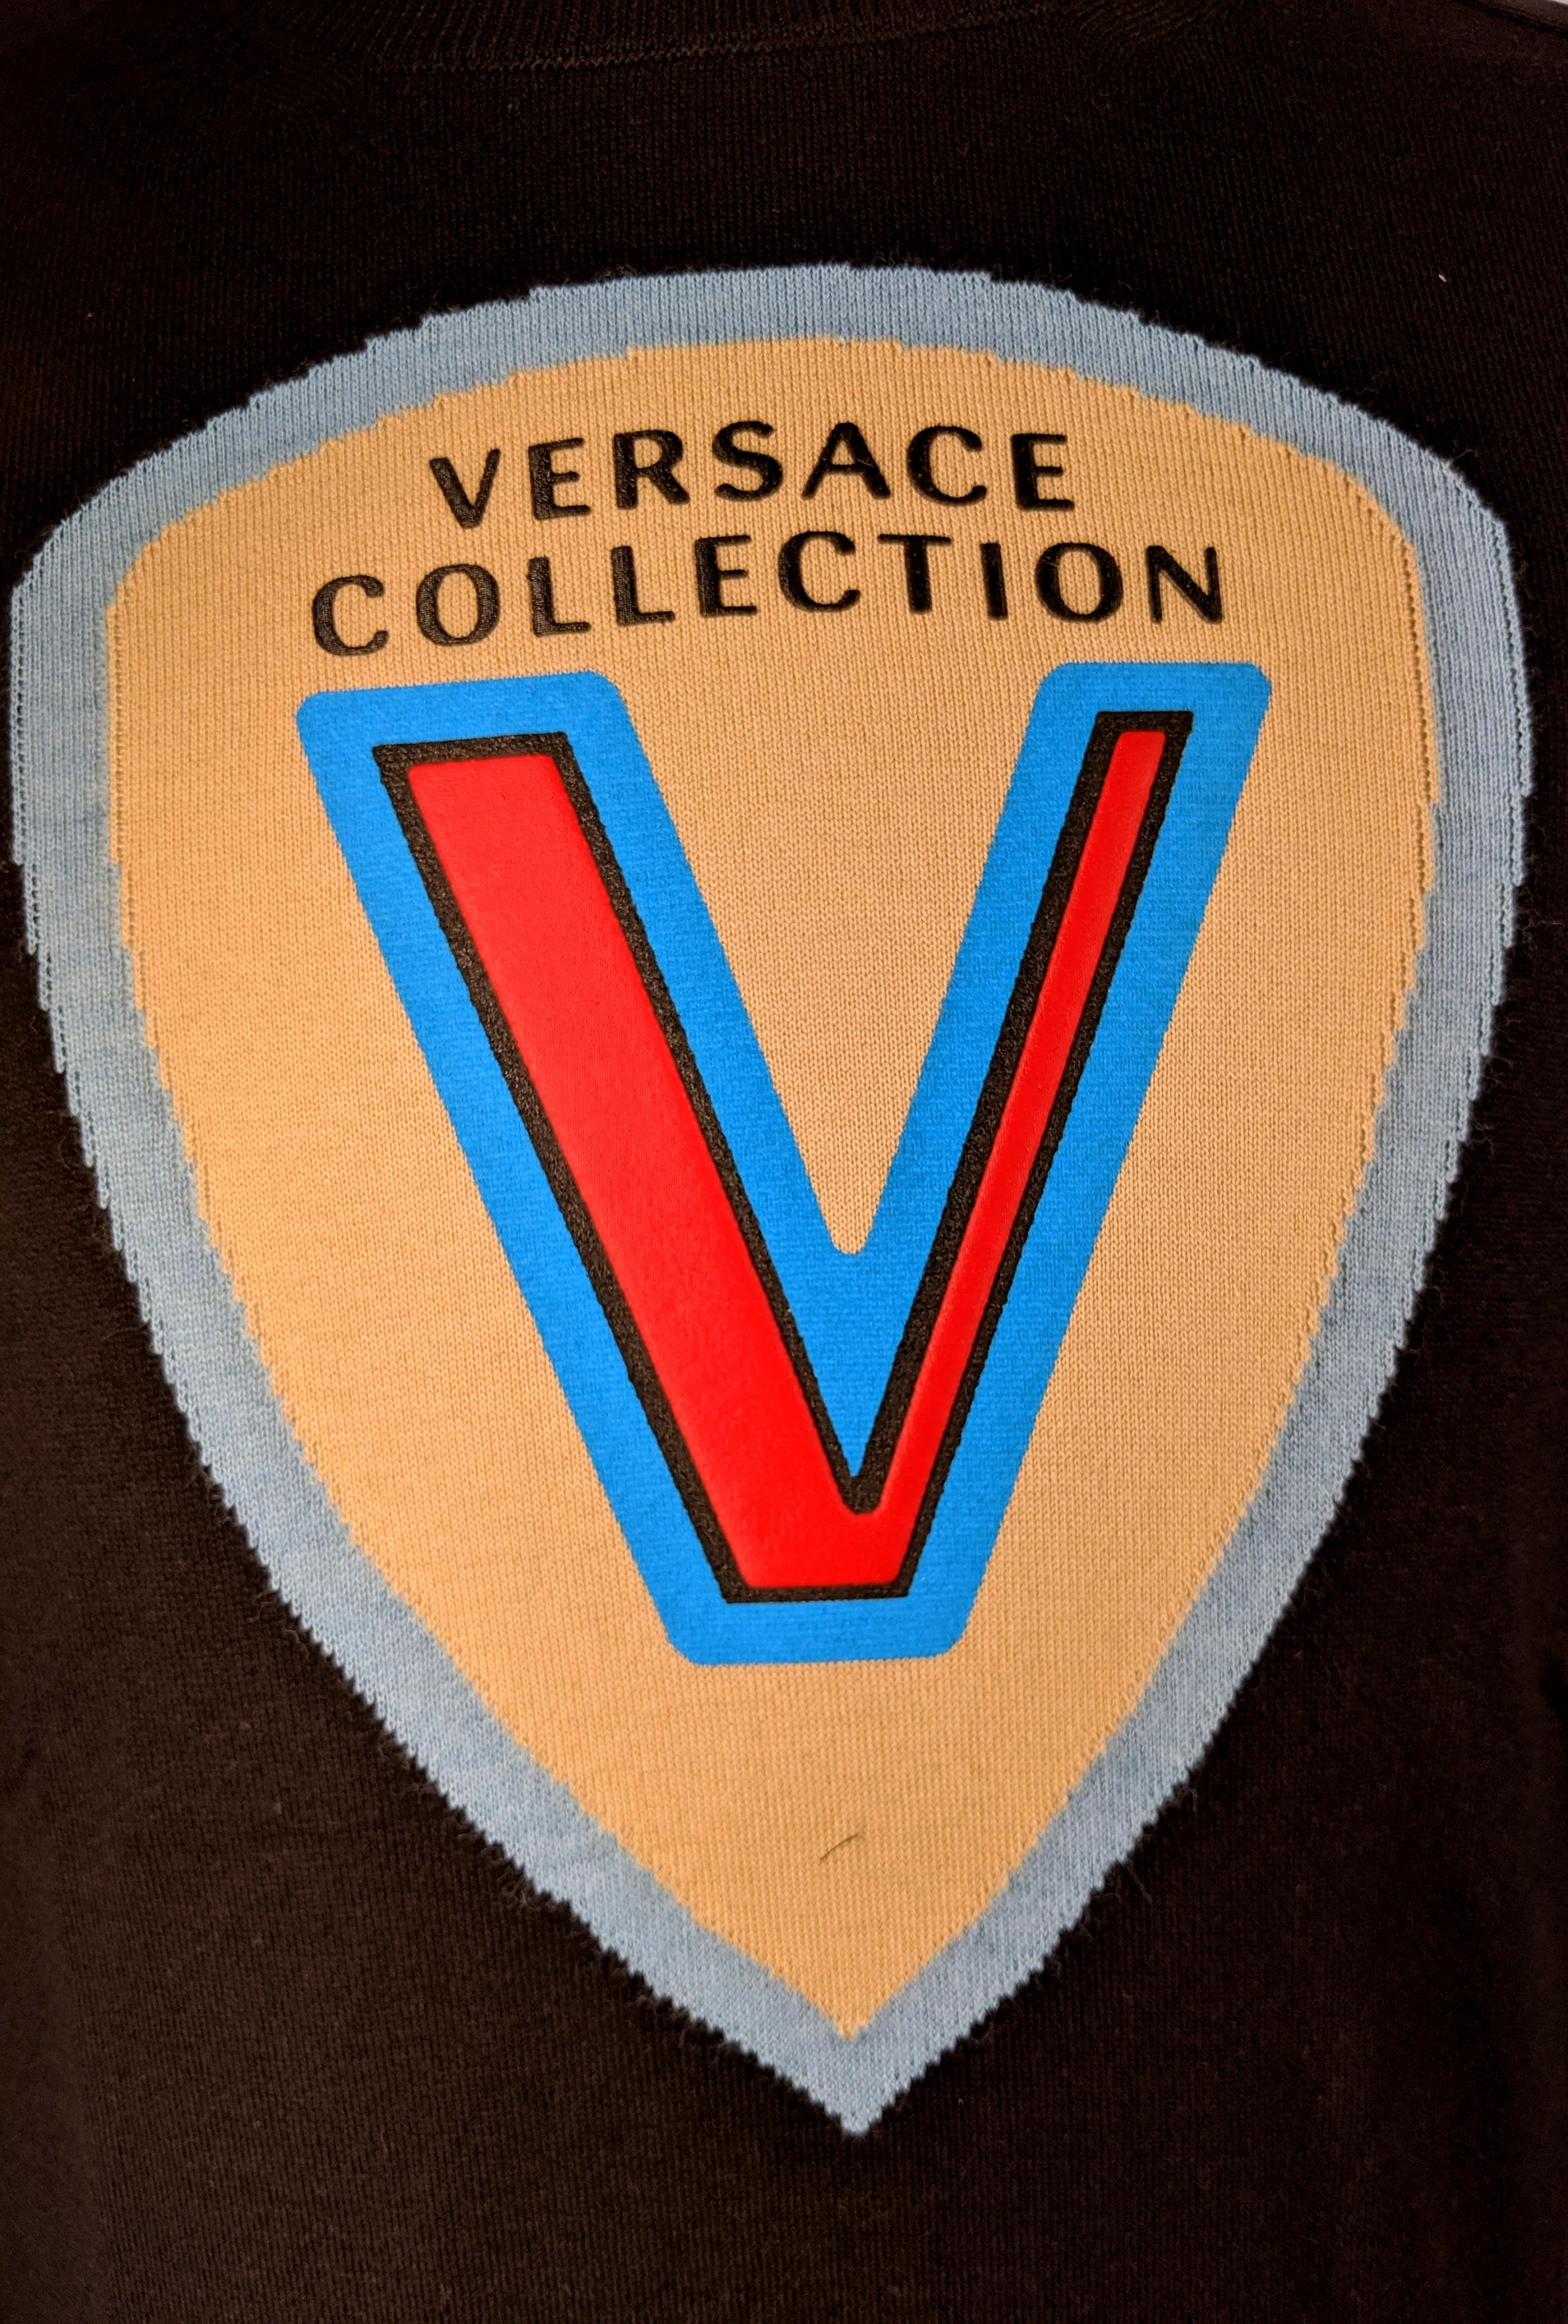 MAGLIONE VERSACE COLLECTION VERSACE COLLECTION | Maglione | V700863VK00338V7035